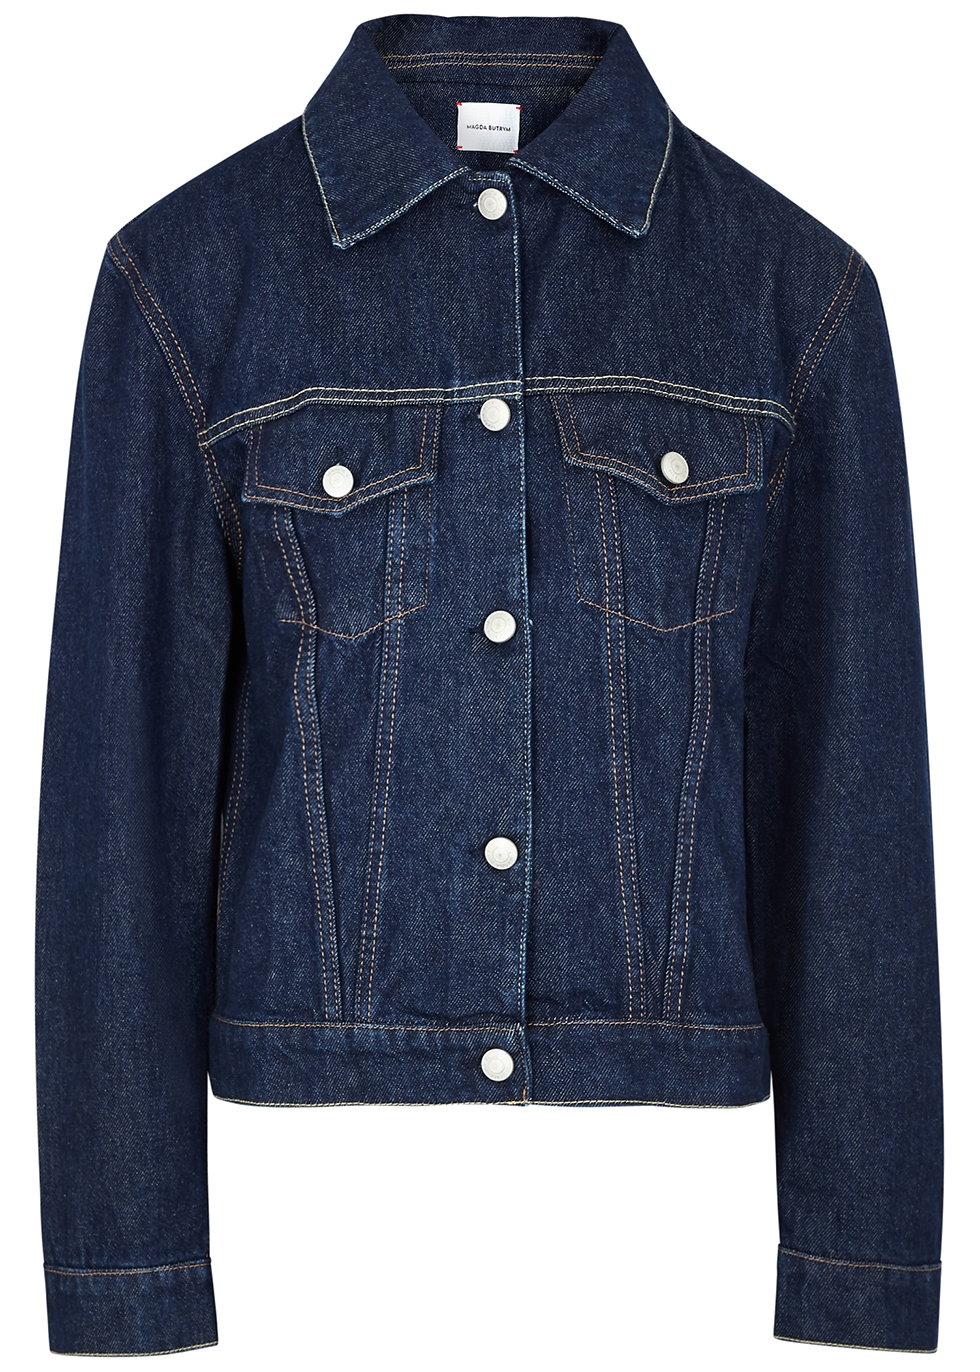 Mayville blue denim jacket